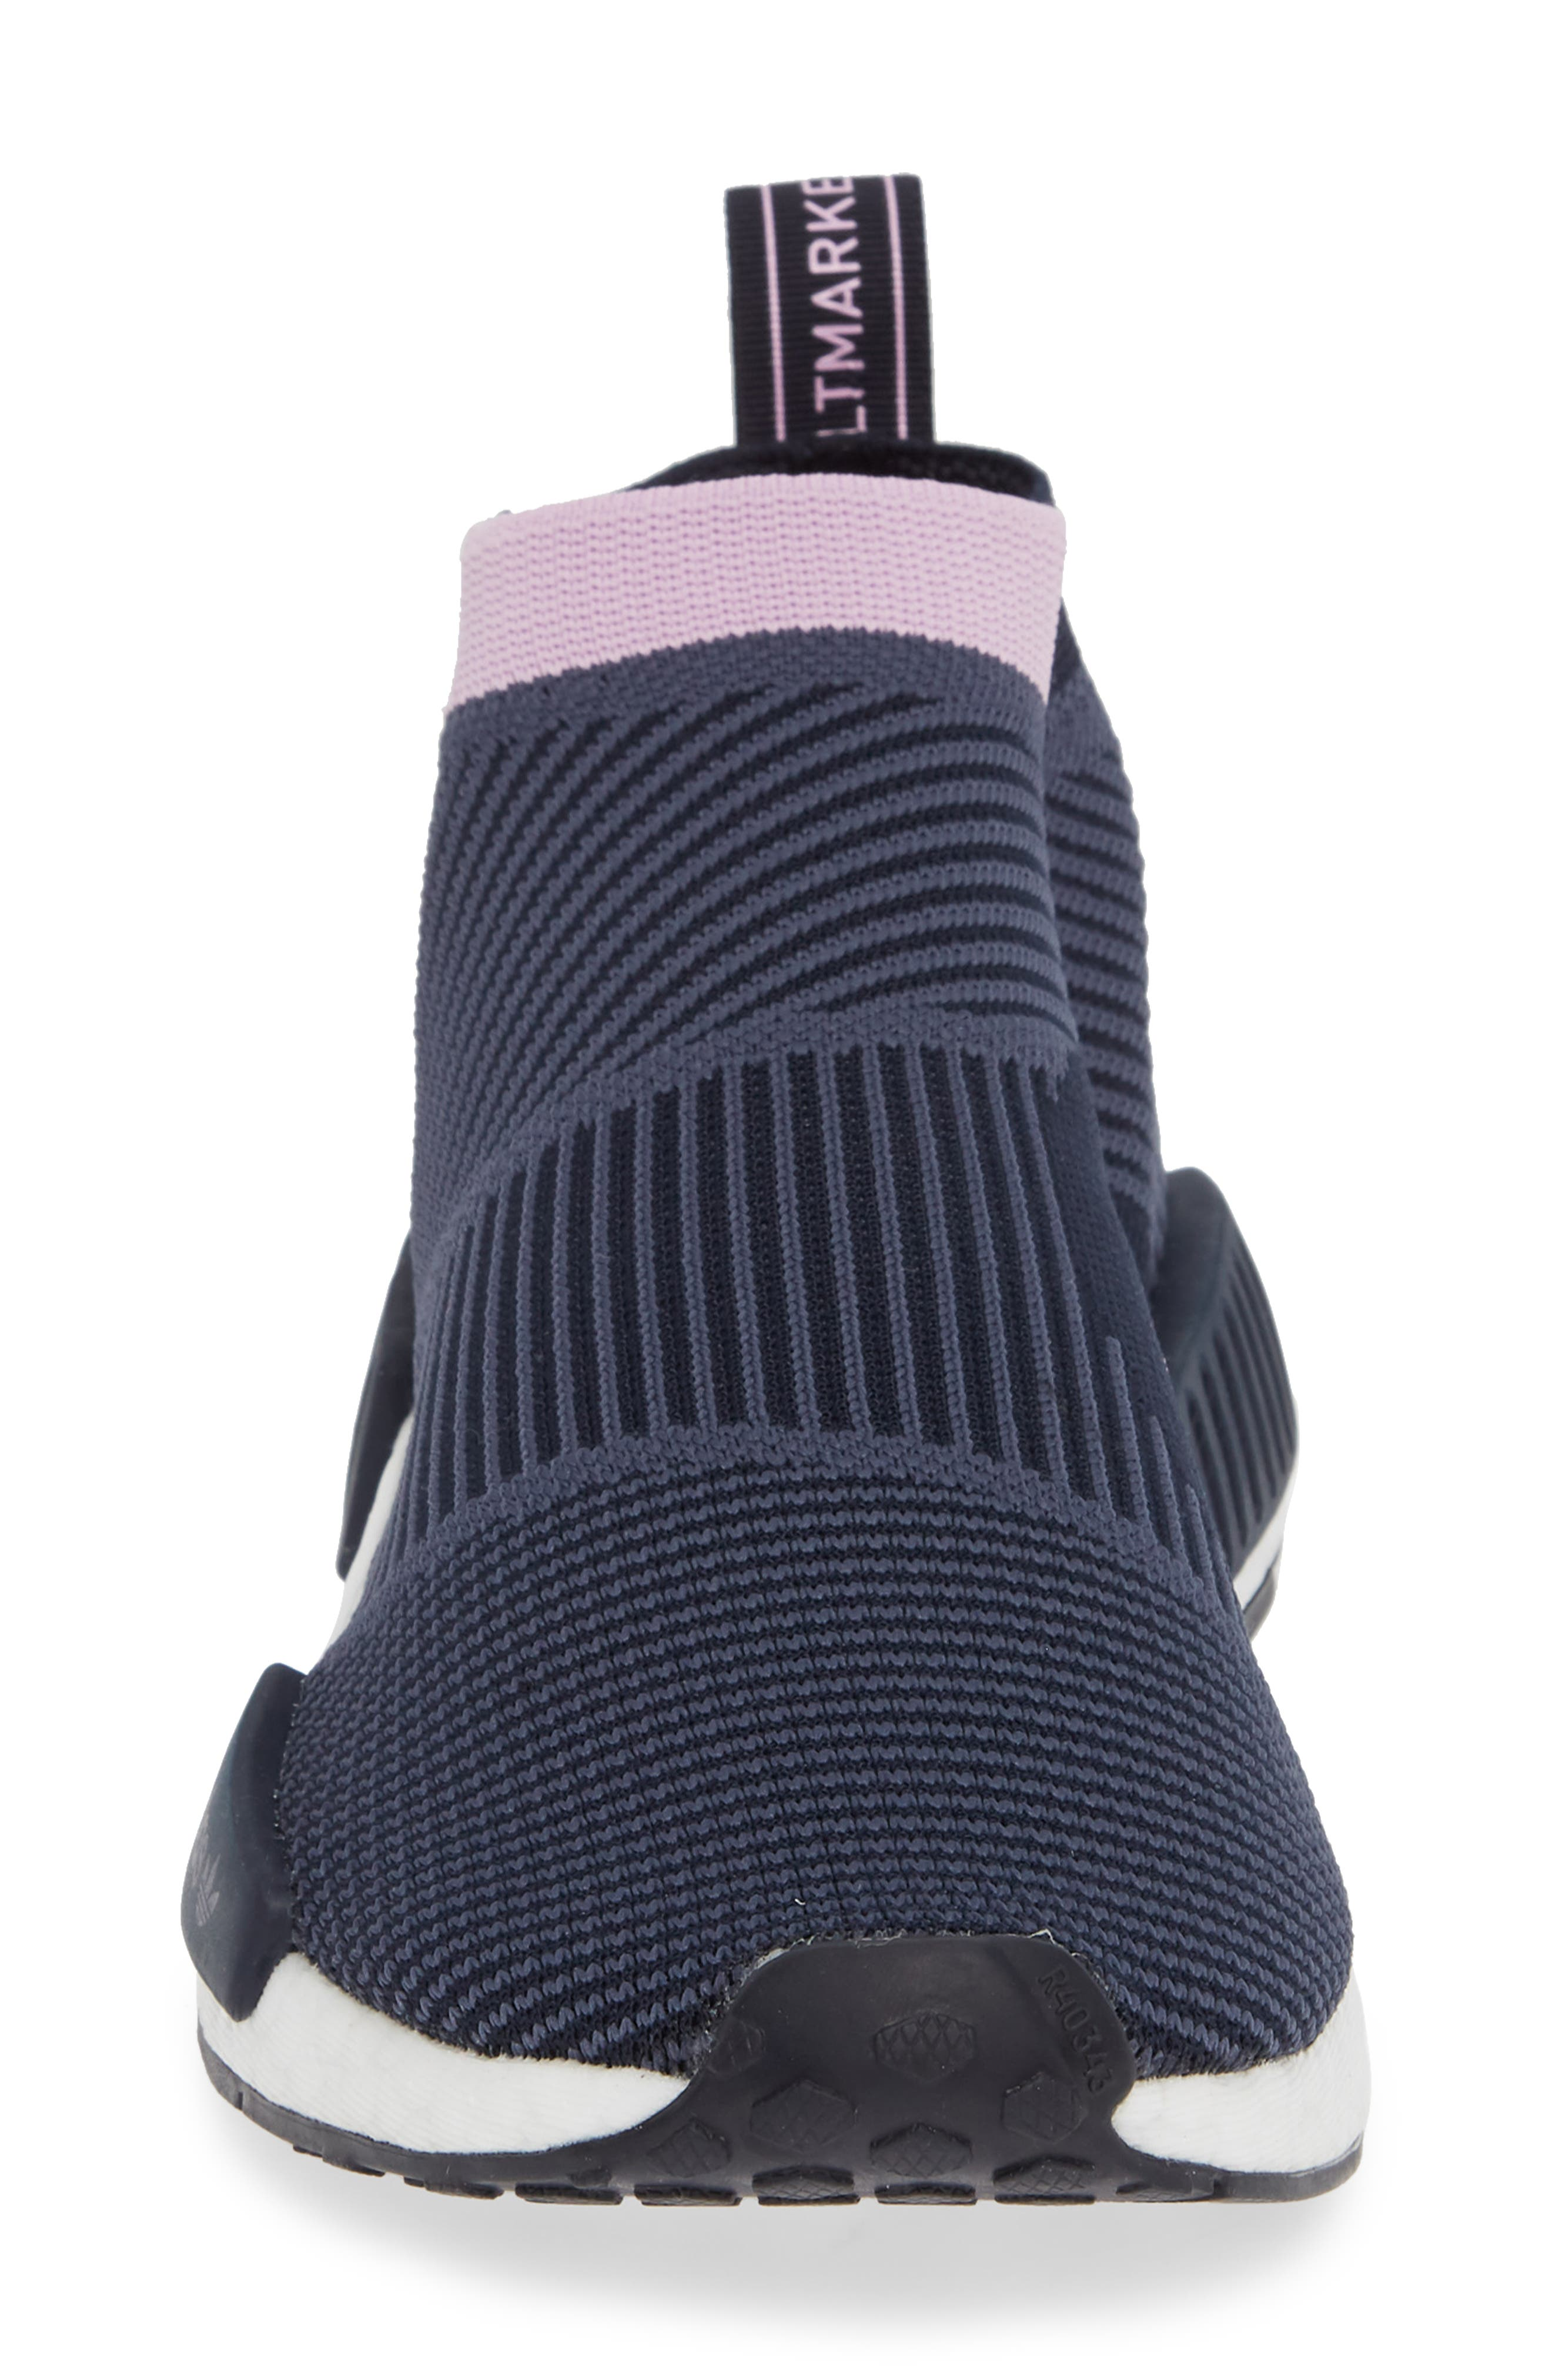 NMD_CS1 Primeknit Sneaker,                             Alternate thumbnail 4, color,                             LEGEND INK/ CLEAR LILAC